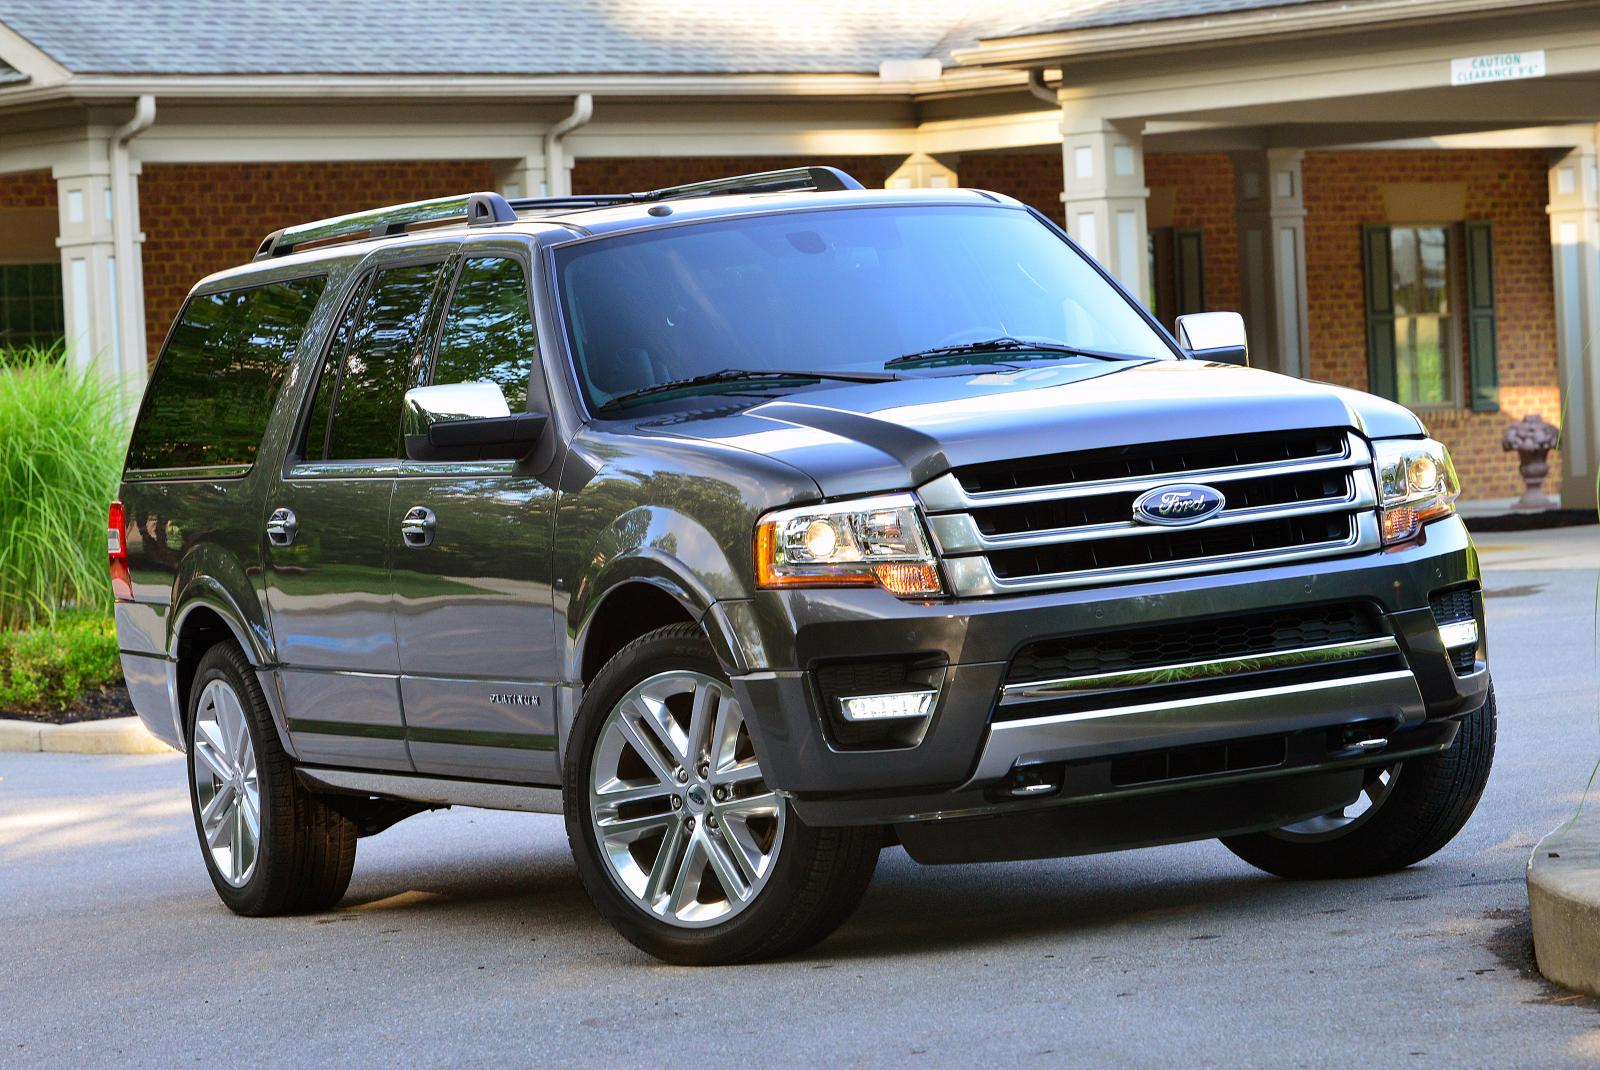 3 5 L Ecoboost >> 2015 Ford Expedition Gets 3.5L EcoBoost V6, Platinum Model - autoevolution